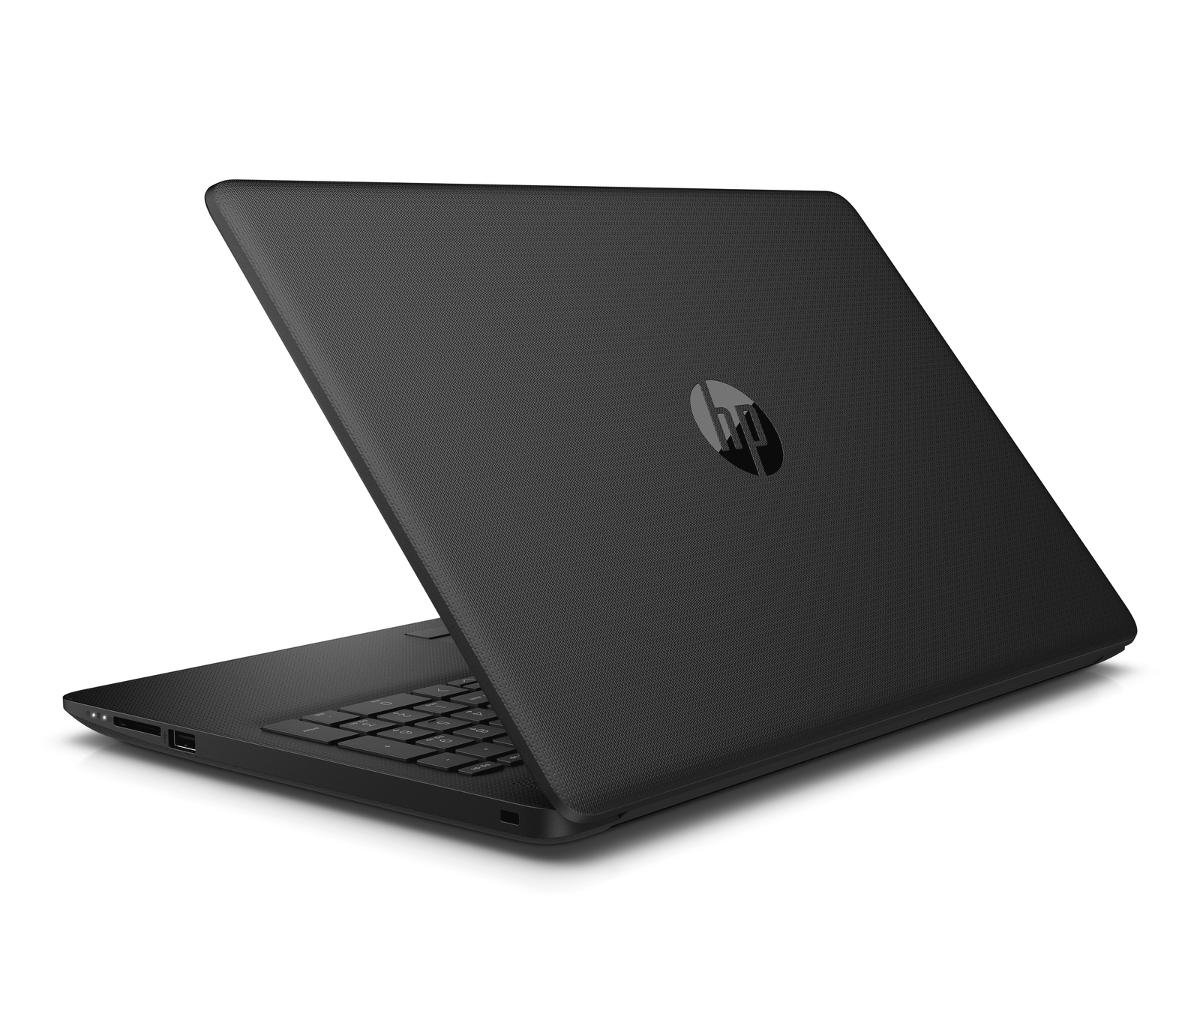 "Laptop HP 15-da1015nw 6AX75EA, i5-8265U, 4 GB RAM, 15.6"", 1 TB, Windows 10 Home"